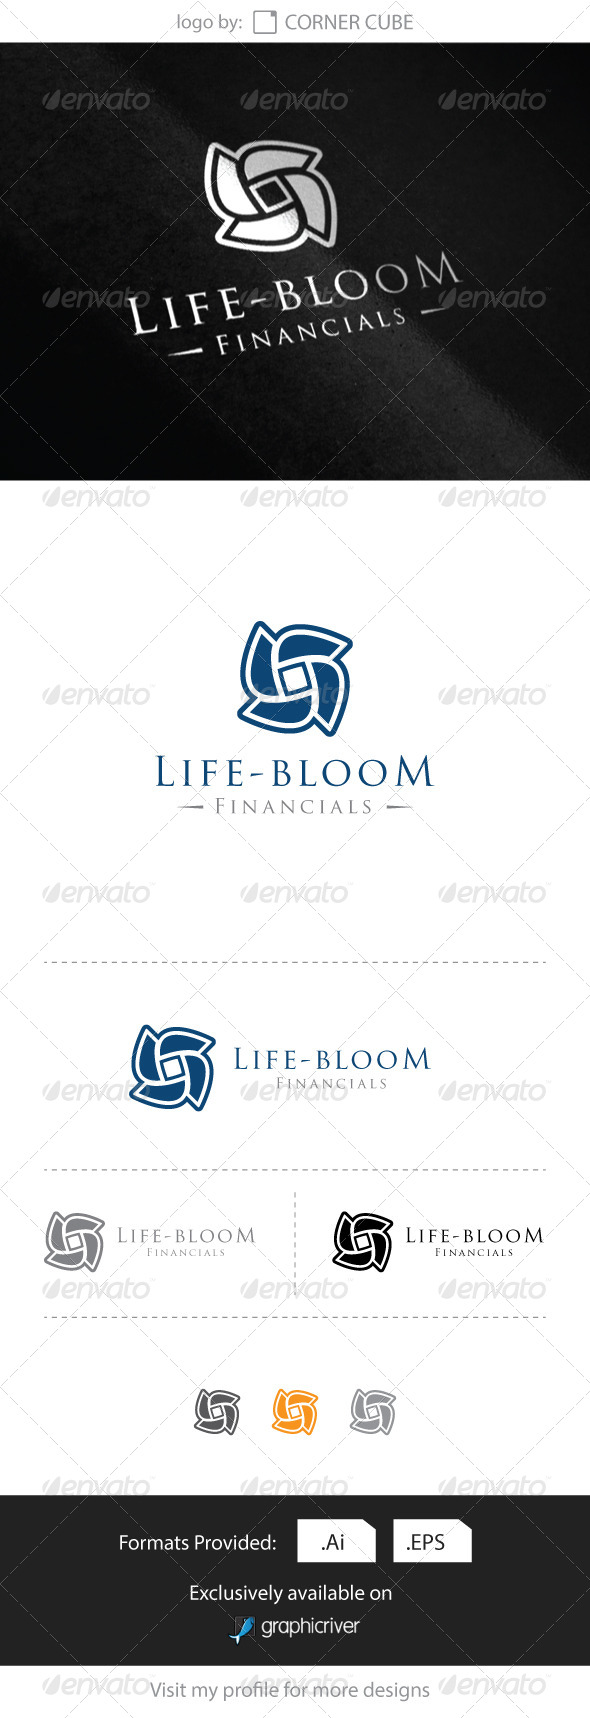 GraphicRiver Life-bloom Financial Logo 8286424